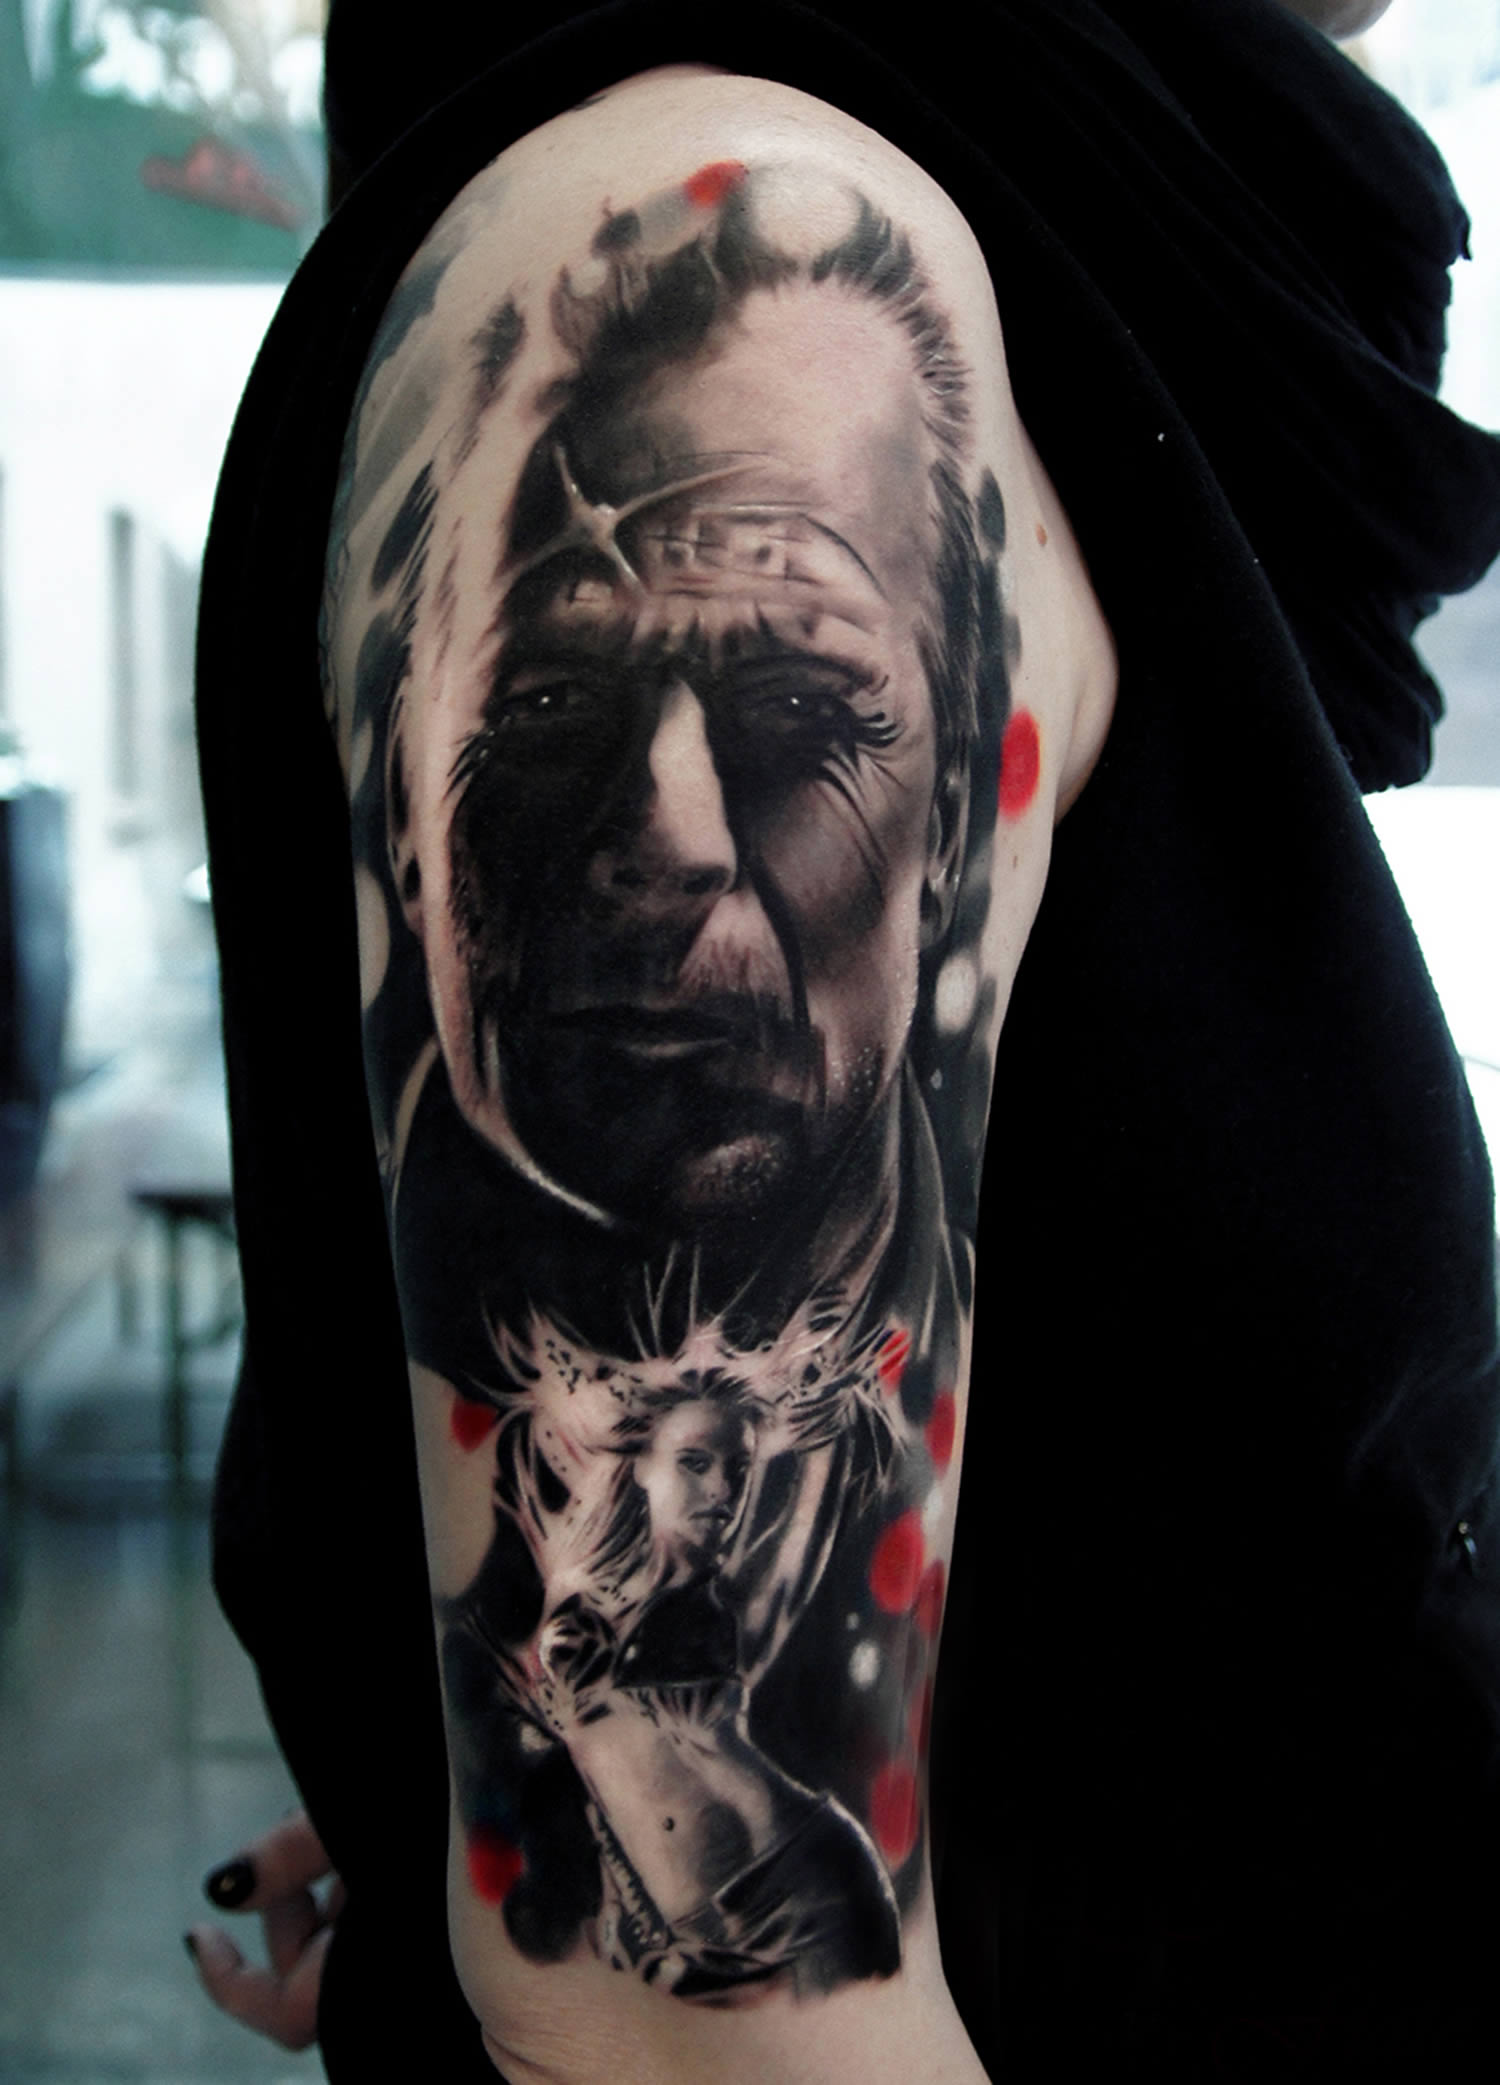 sin city portrait of bruce willis tattoo by silvano fiato